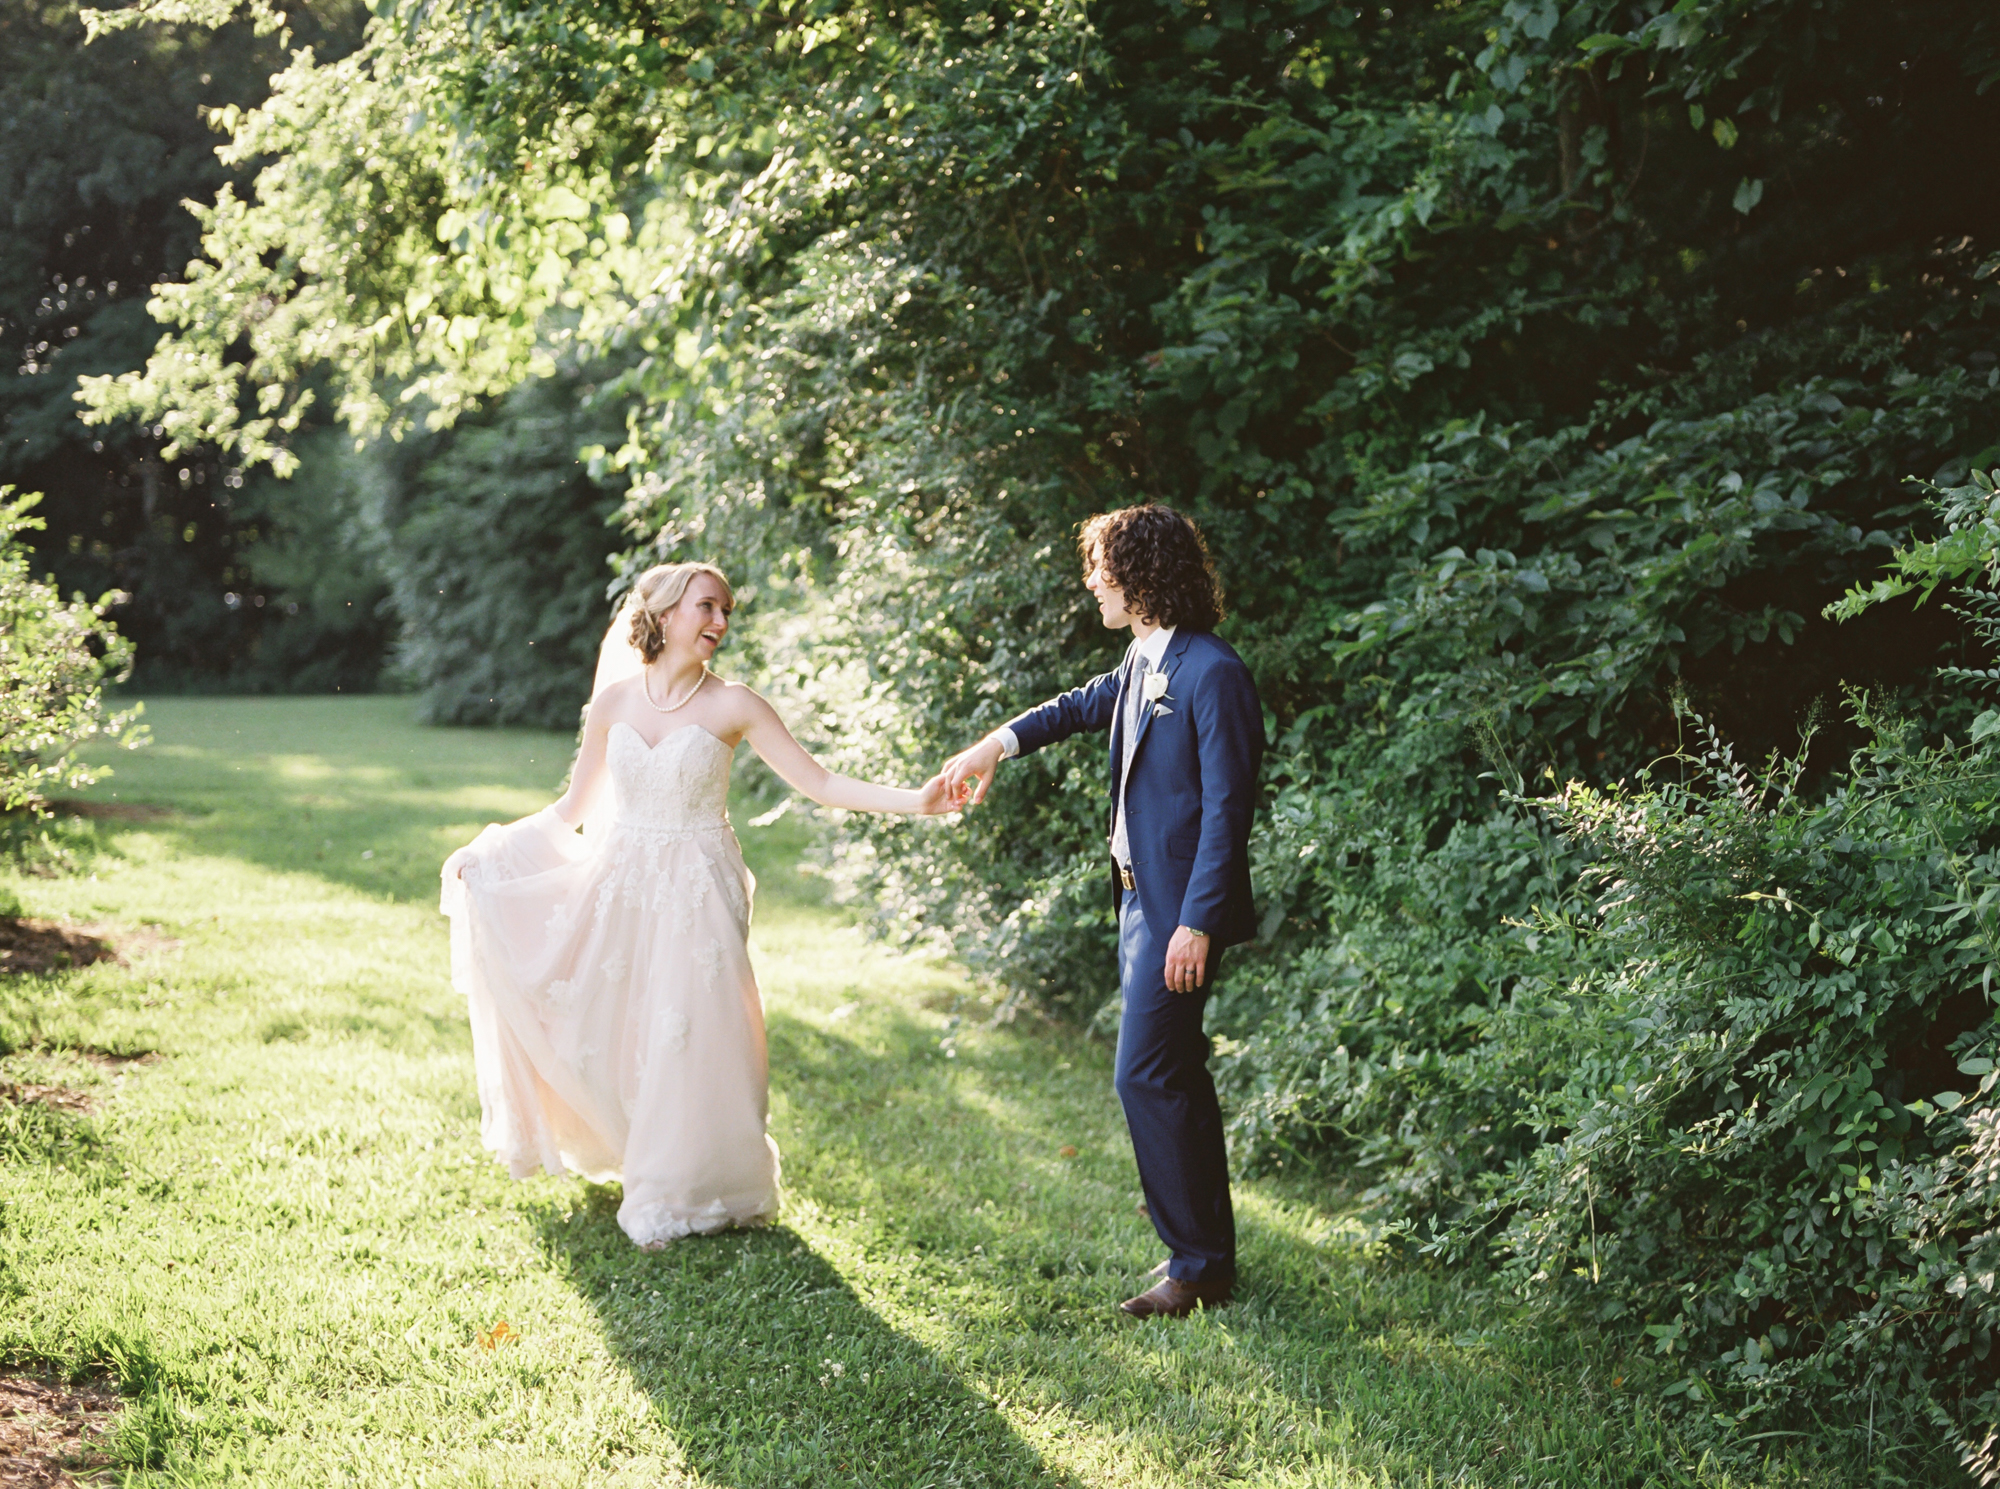 film wedding photography of bride and groom